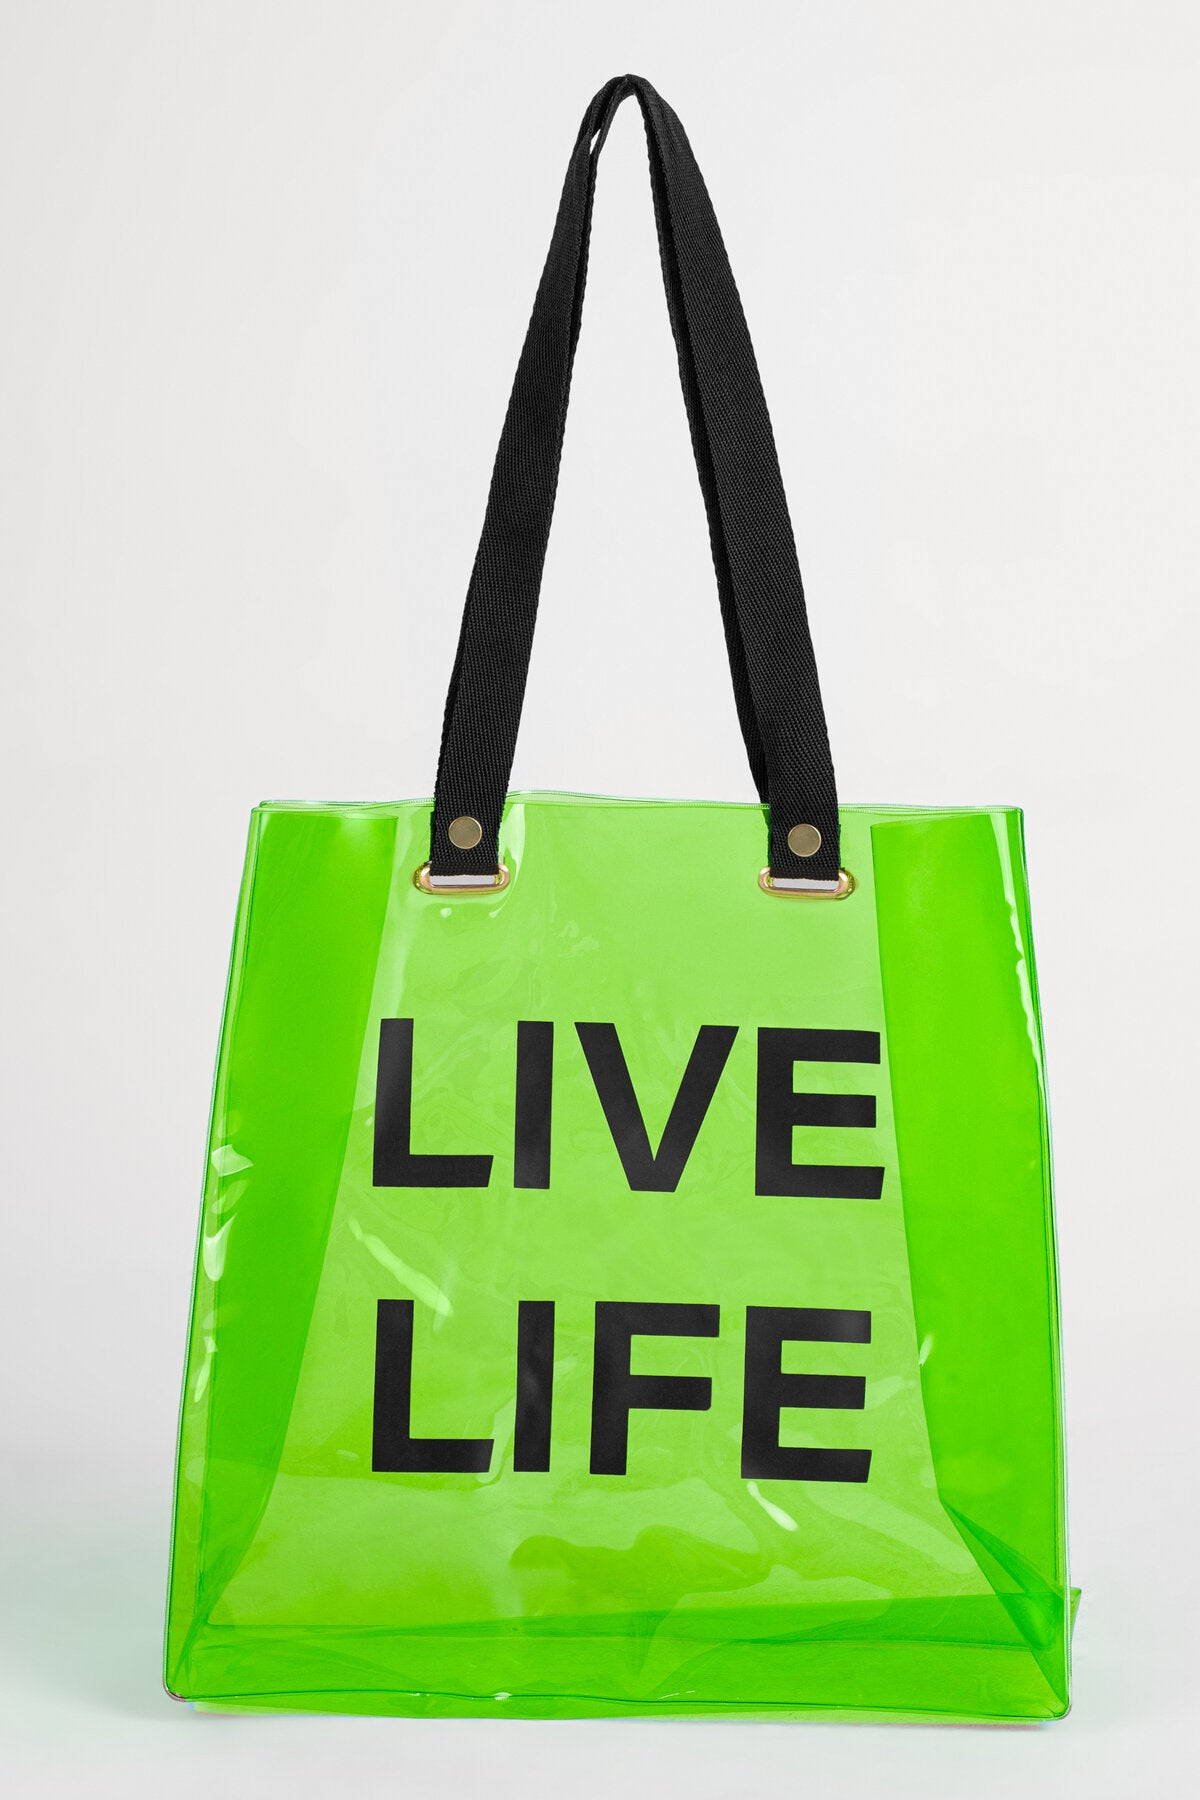 BEACH TOTE IN NEON GREEN